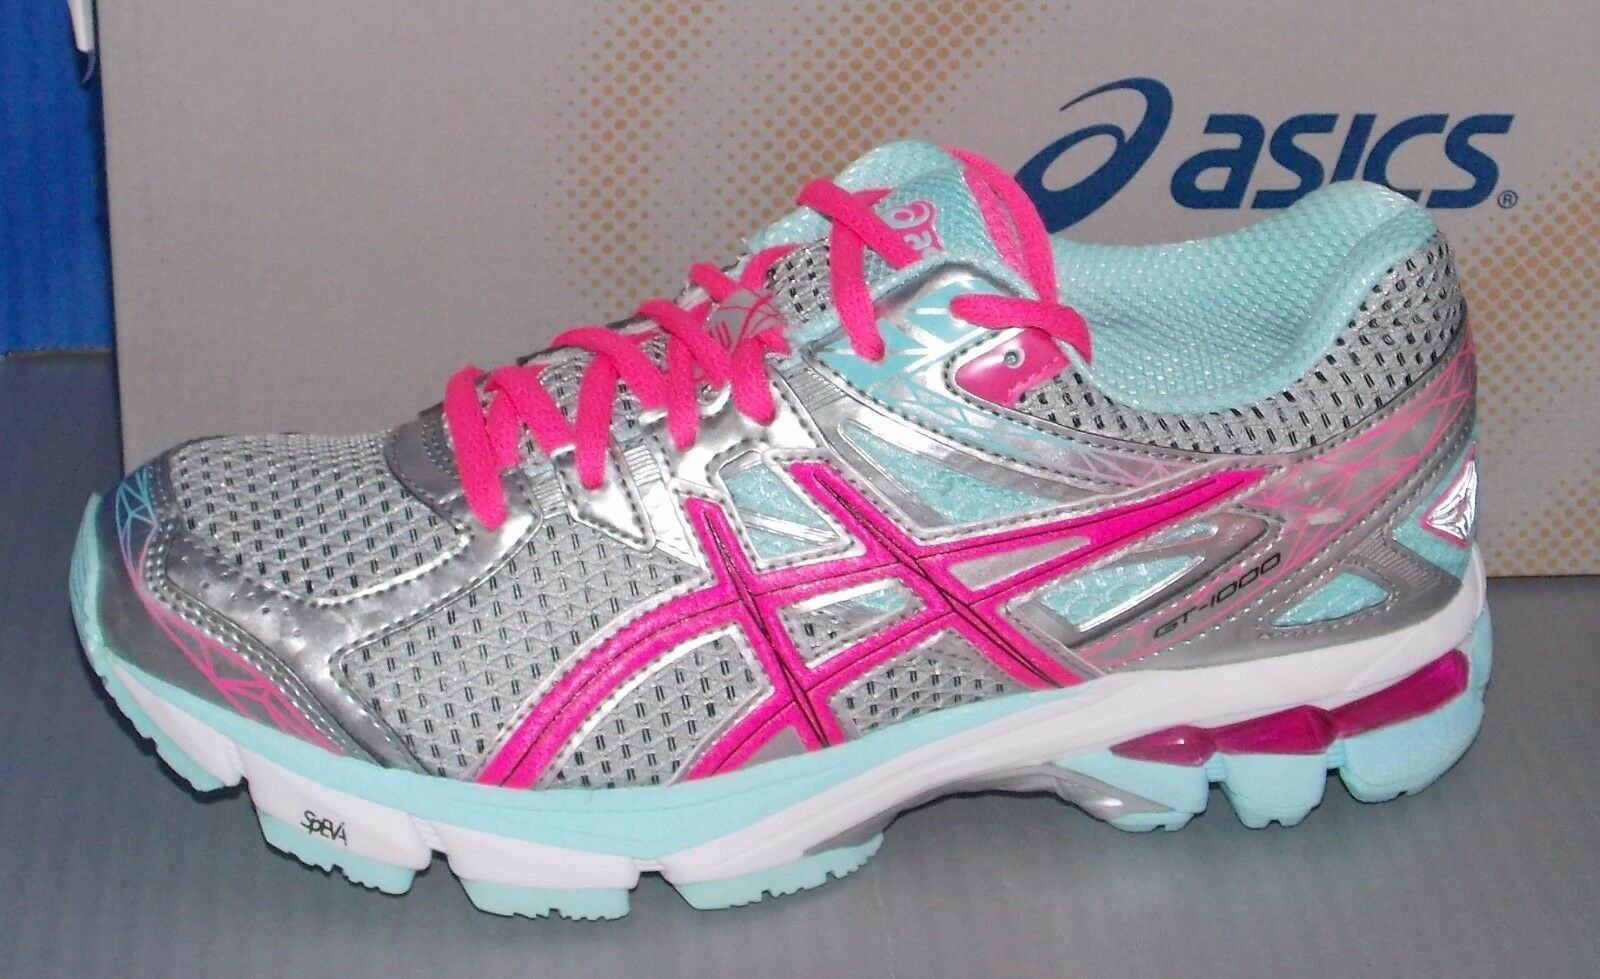 Damenschuhe ASICS GT - 1000 3 in PINK colors LIGHTNING / HOT PINK in / MINT SIZE 6.5 06ebf0